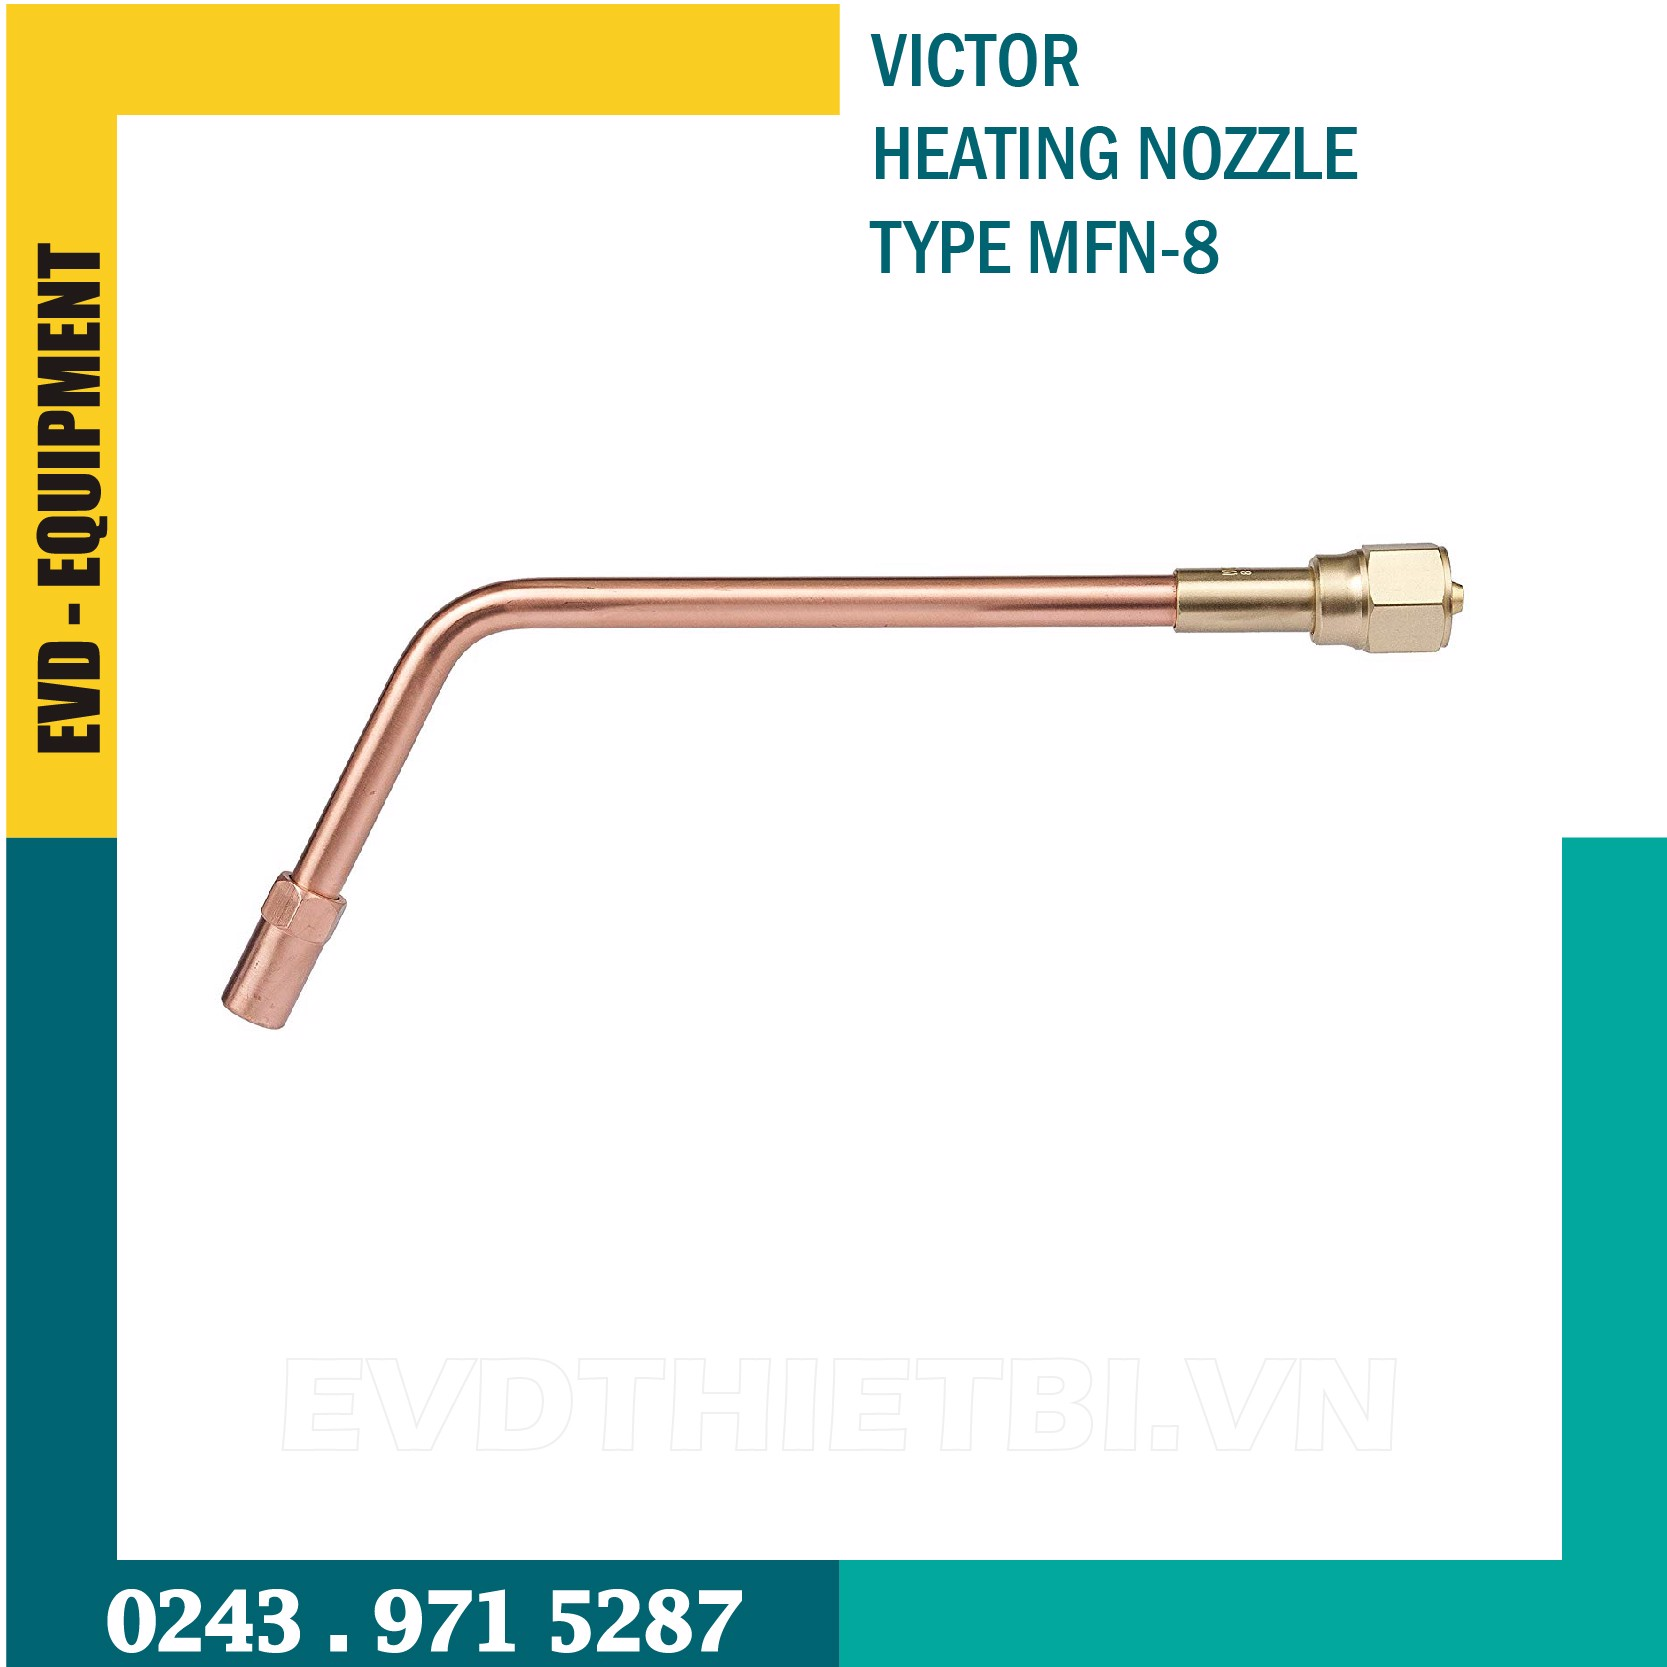 VICTOR HEATING NOZZLE TYPE MFN-8